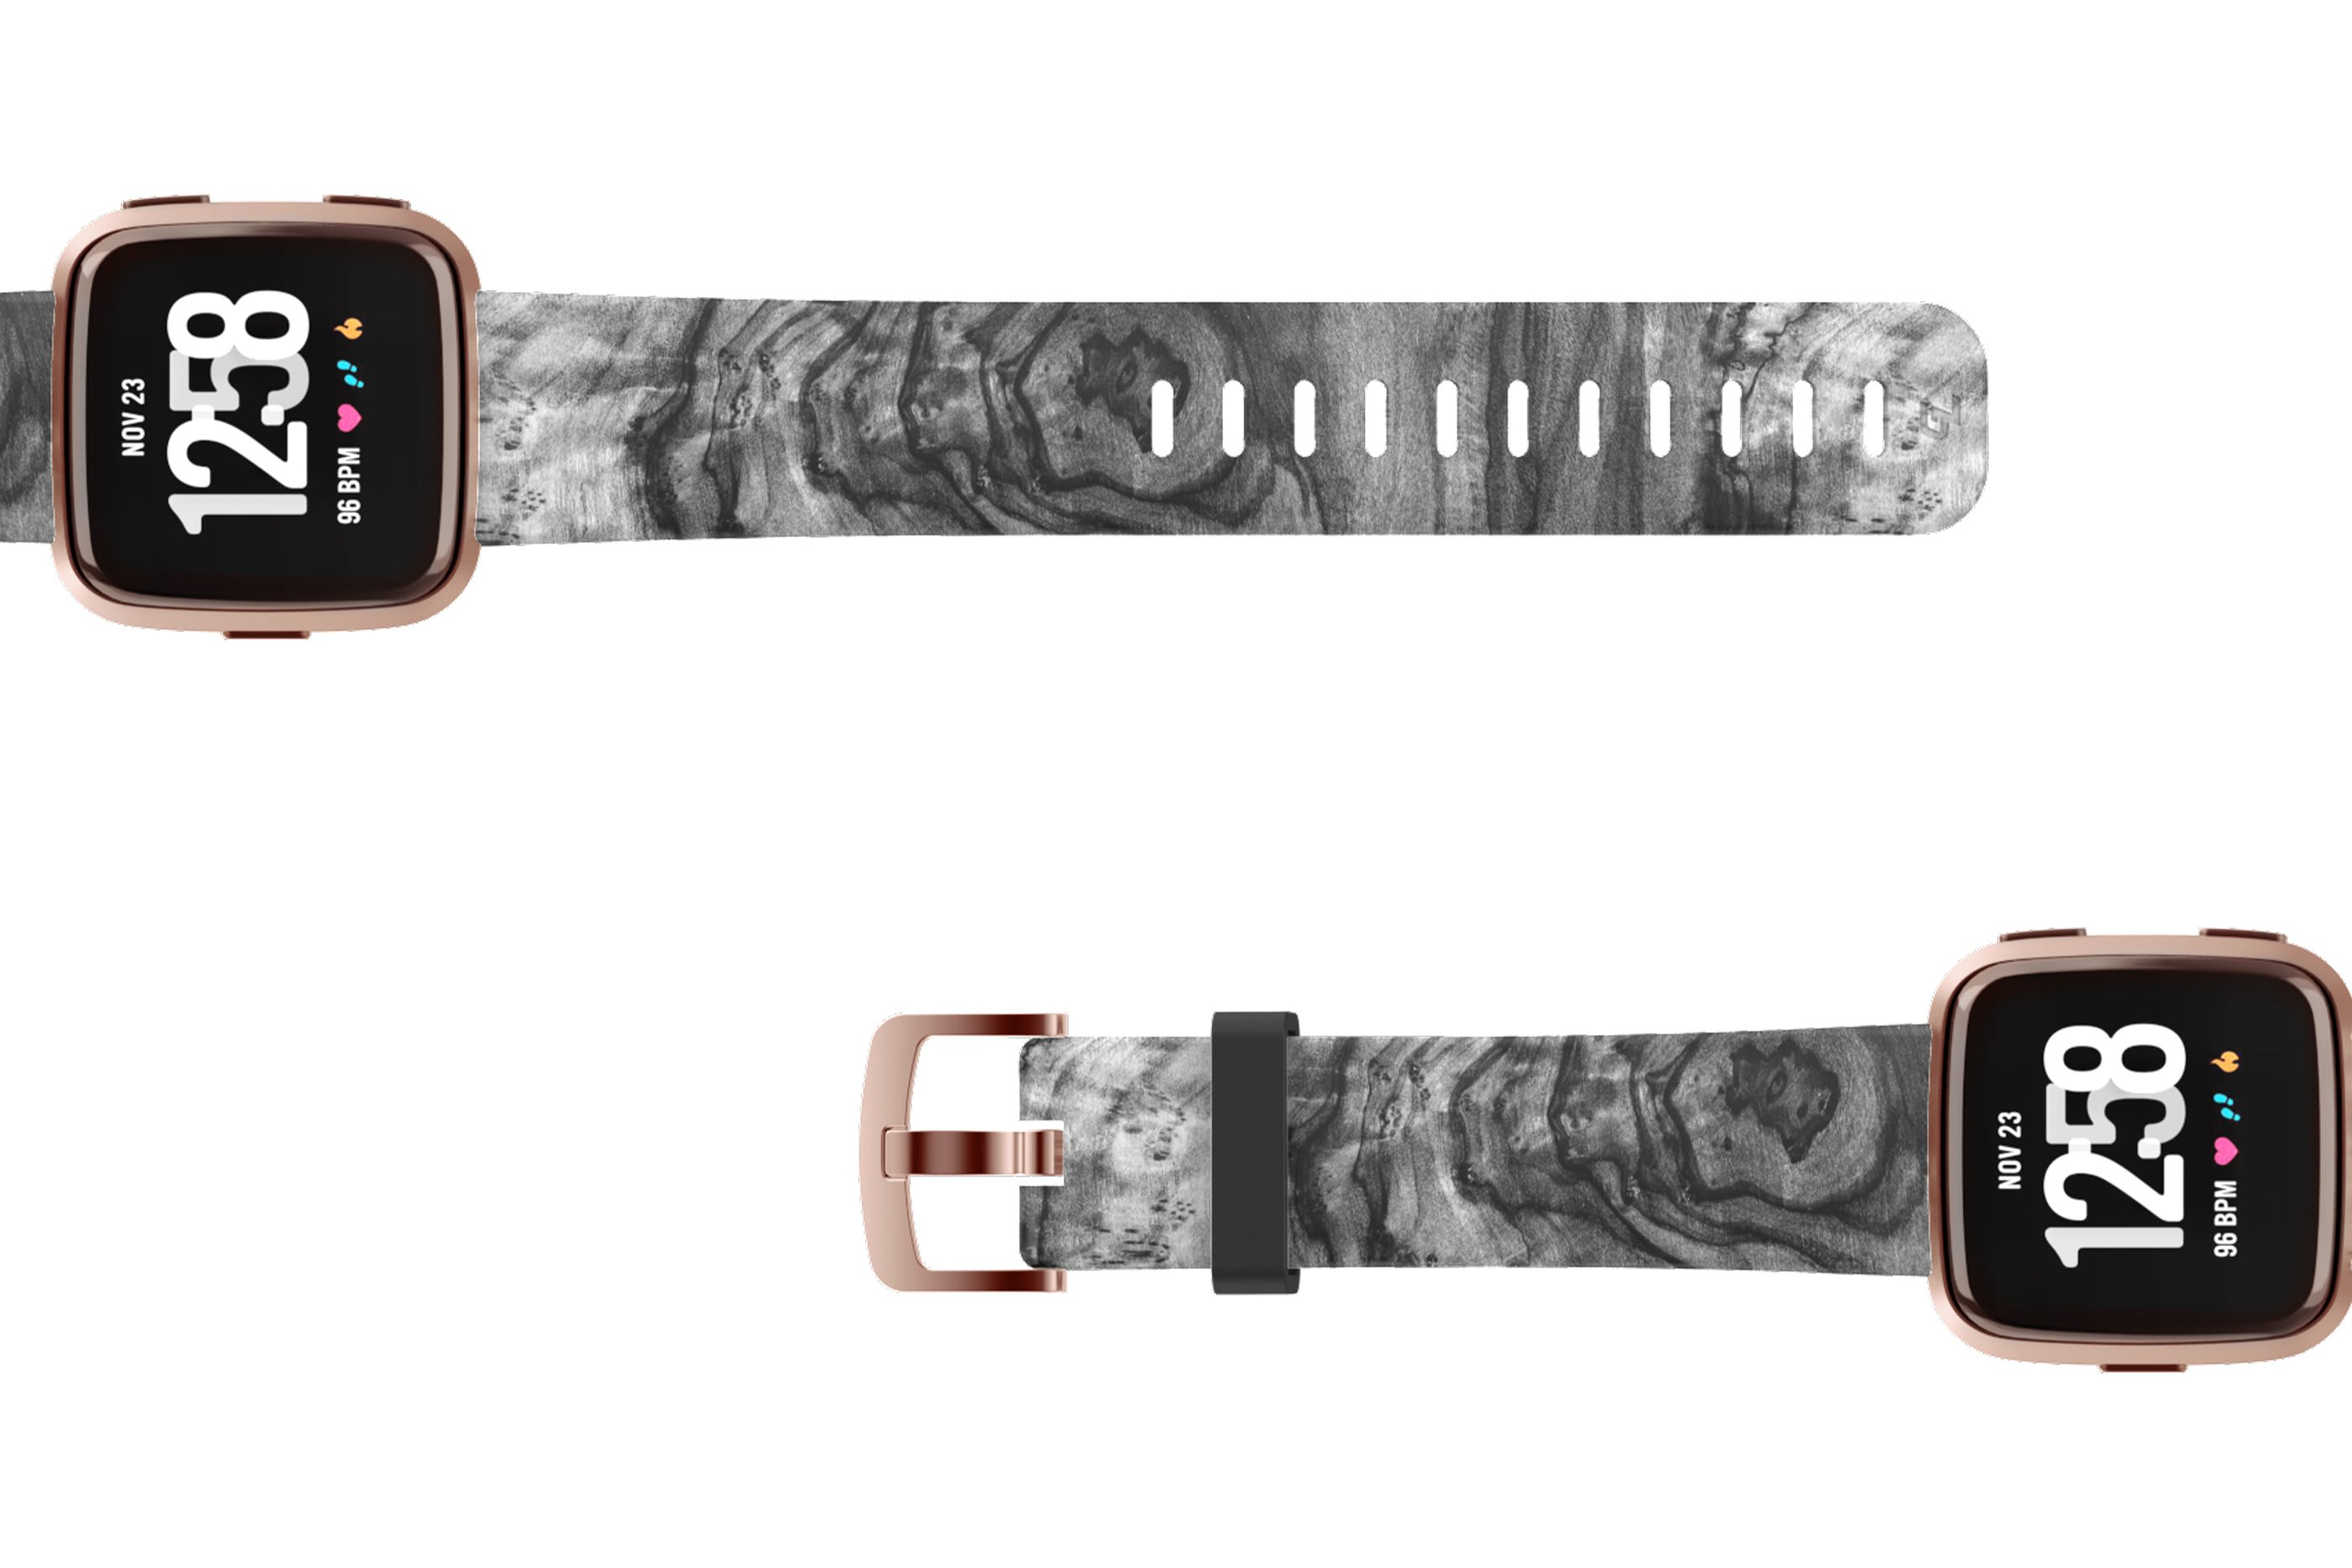 Nomad Relic Fitbit Versa watch band with rose gold hardware viewed top down